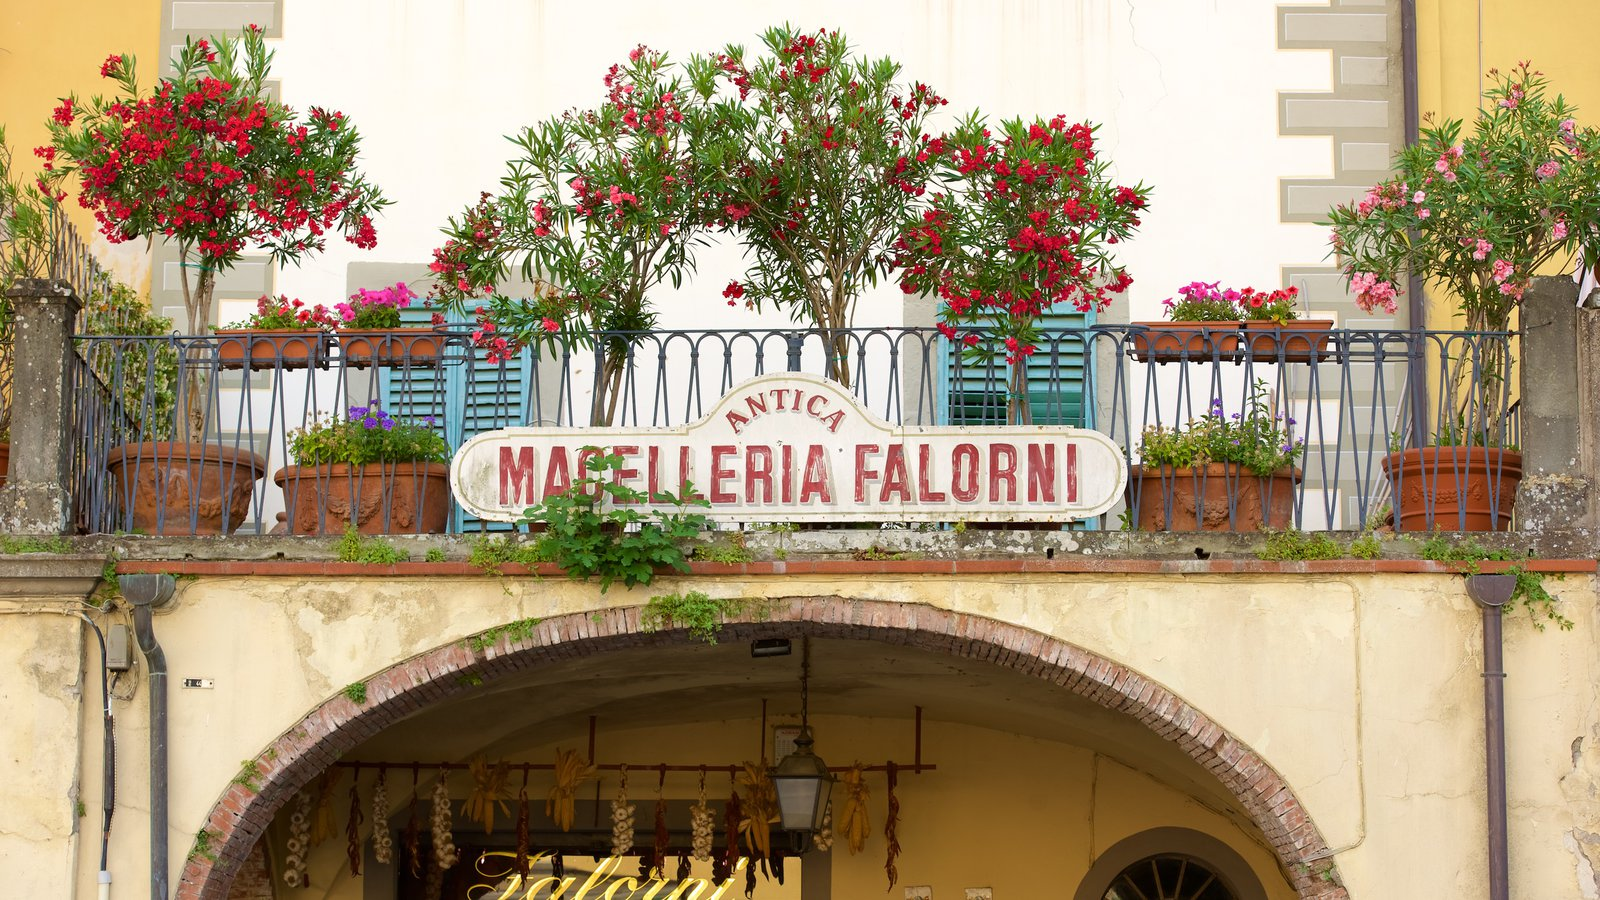 Greve in Chianti showing a small town or village, signage and flowers